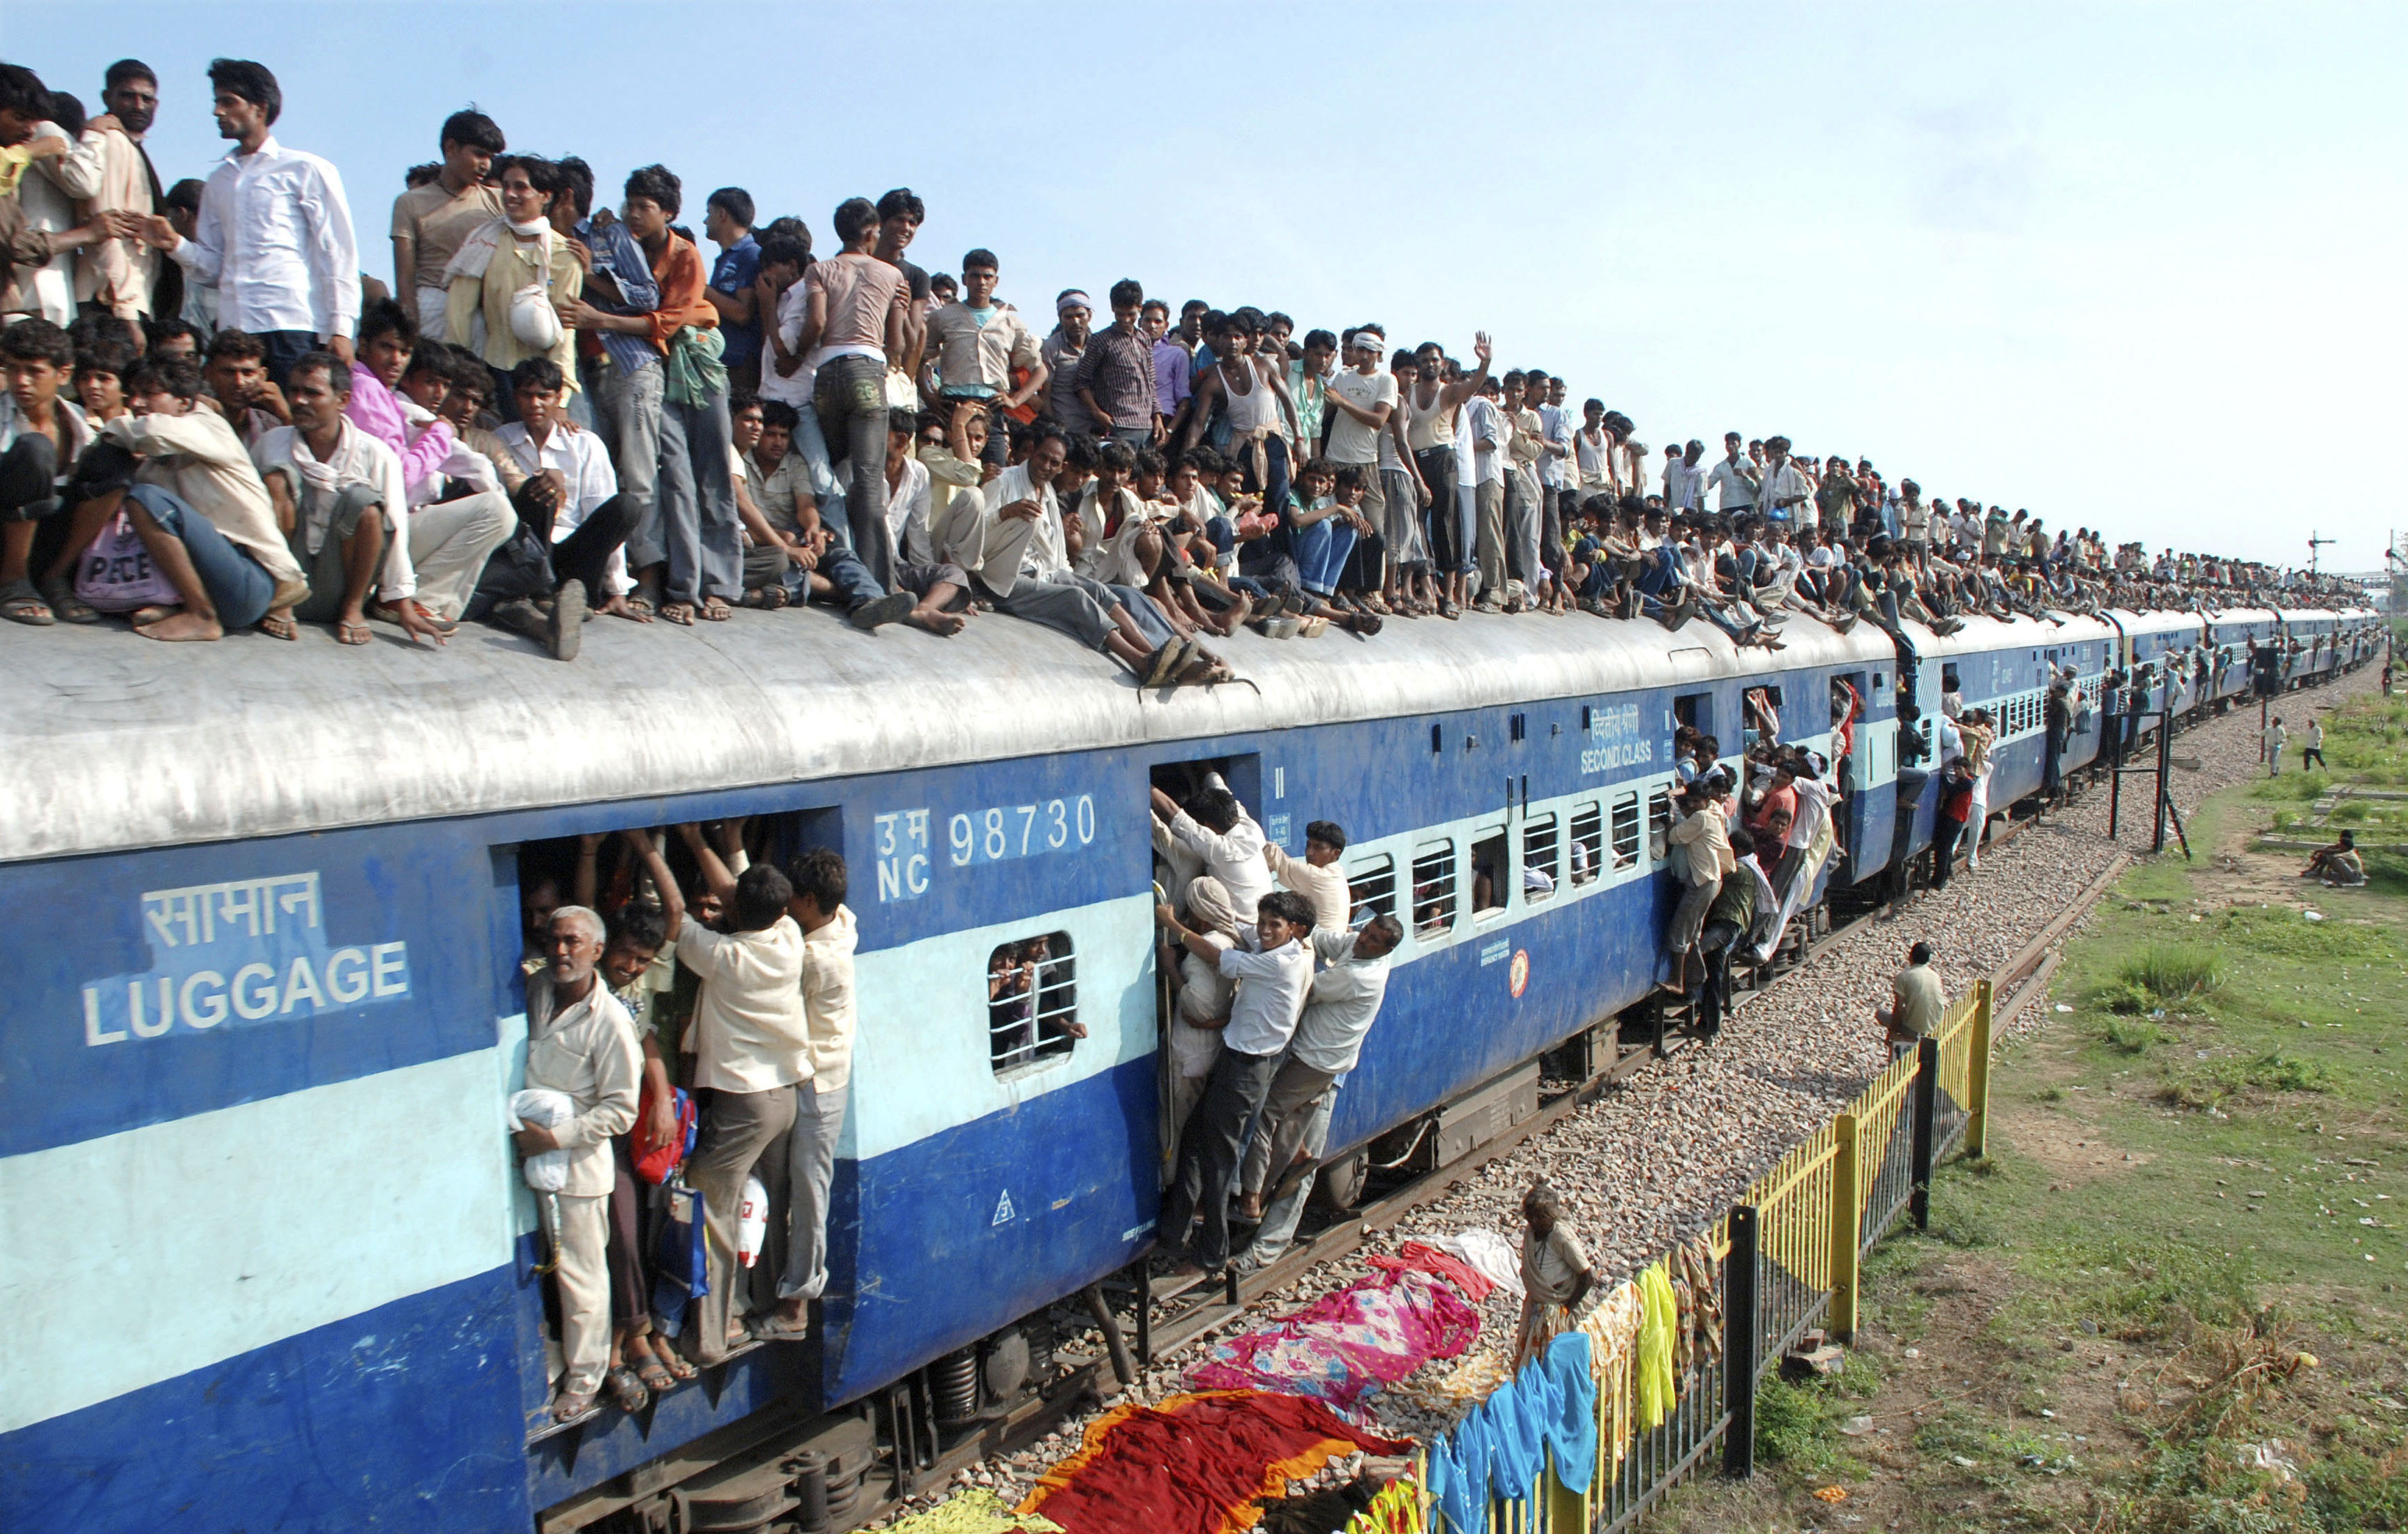 "Hindu devotees travel on a crowded passenger train to take part in the ""Guru Purnima"" festival in Goverdhan town near the northern Indian city of Mathura July 24, 2010. Guru Purnima is observed to pay respects to one's ""guru"" or teacher who symbolises the Hindu Trinity of Brahma, Vishnu and Mahesh, believed to be the creators of the universe and will be celebrated on Sunday. REUTERS/K. K. Arora (INDIA - Tags: SOCIETY RELIGION TRANSPORT)"